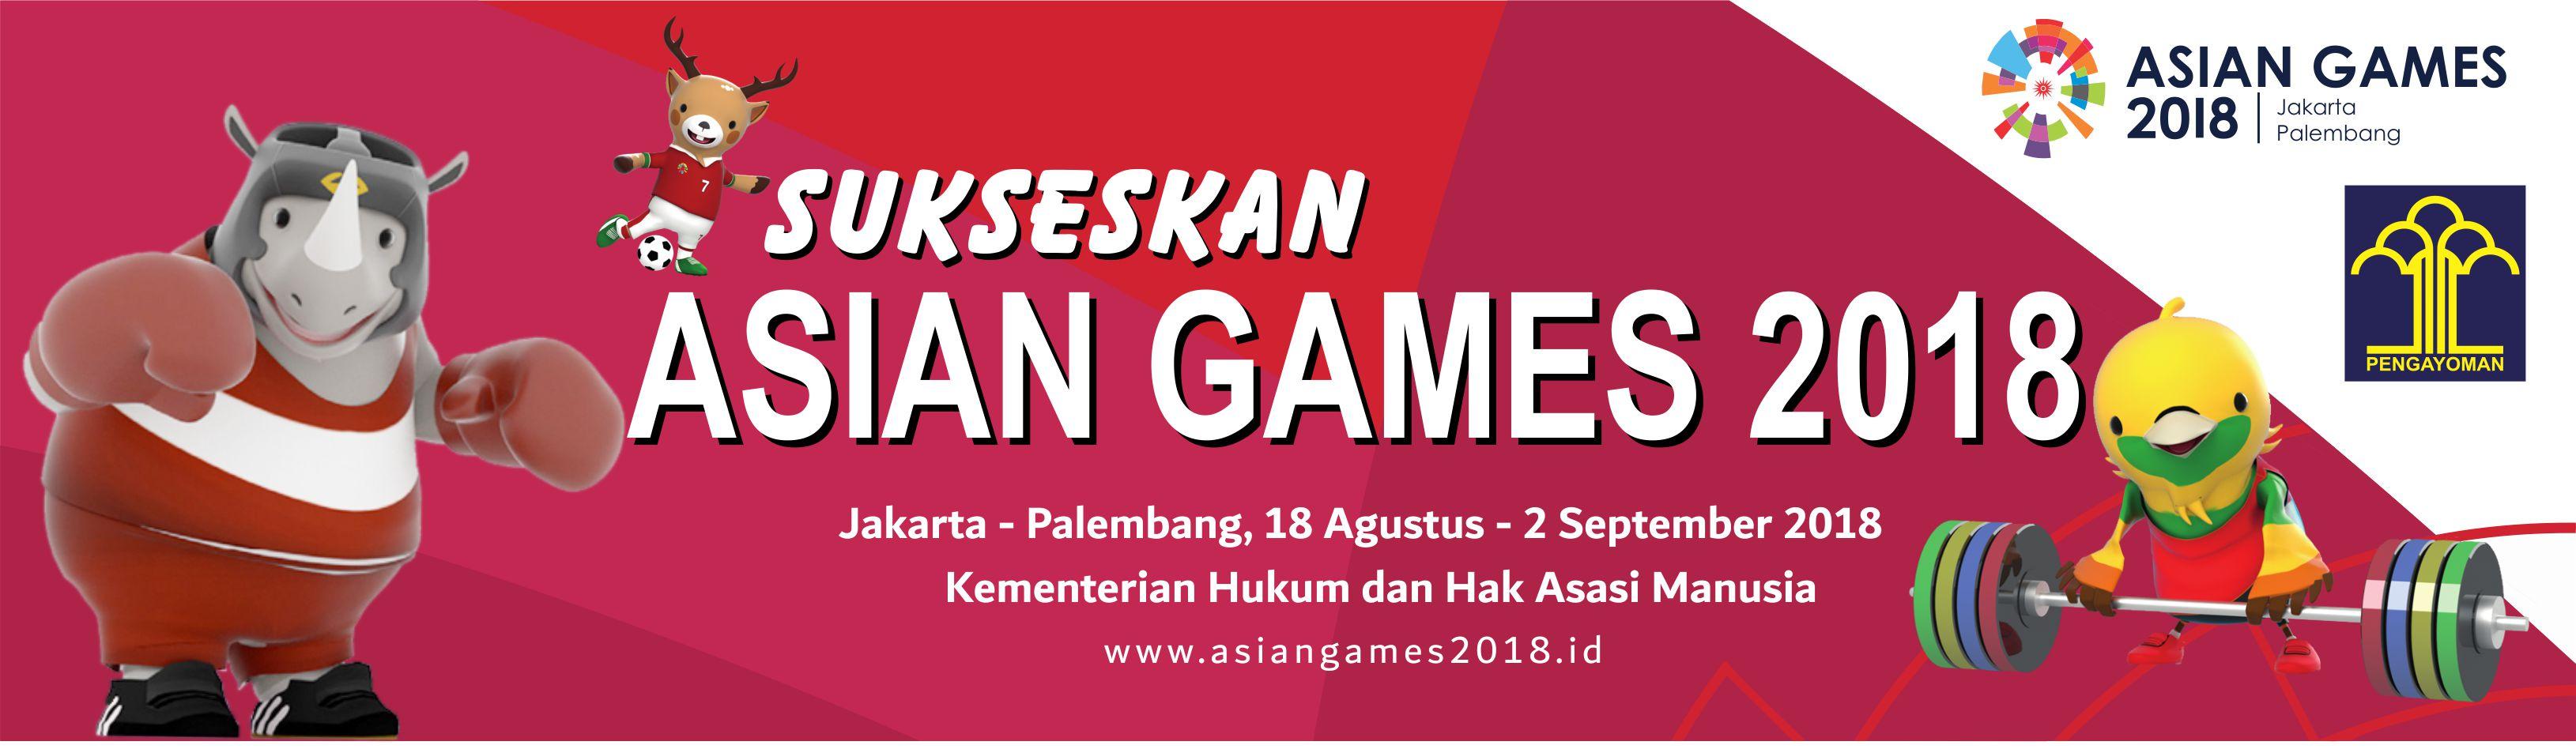 banner-asiangames-fix